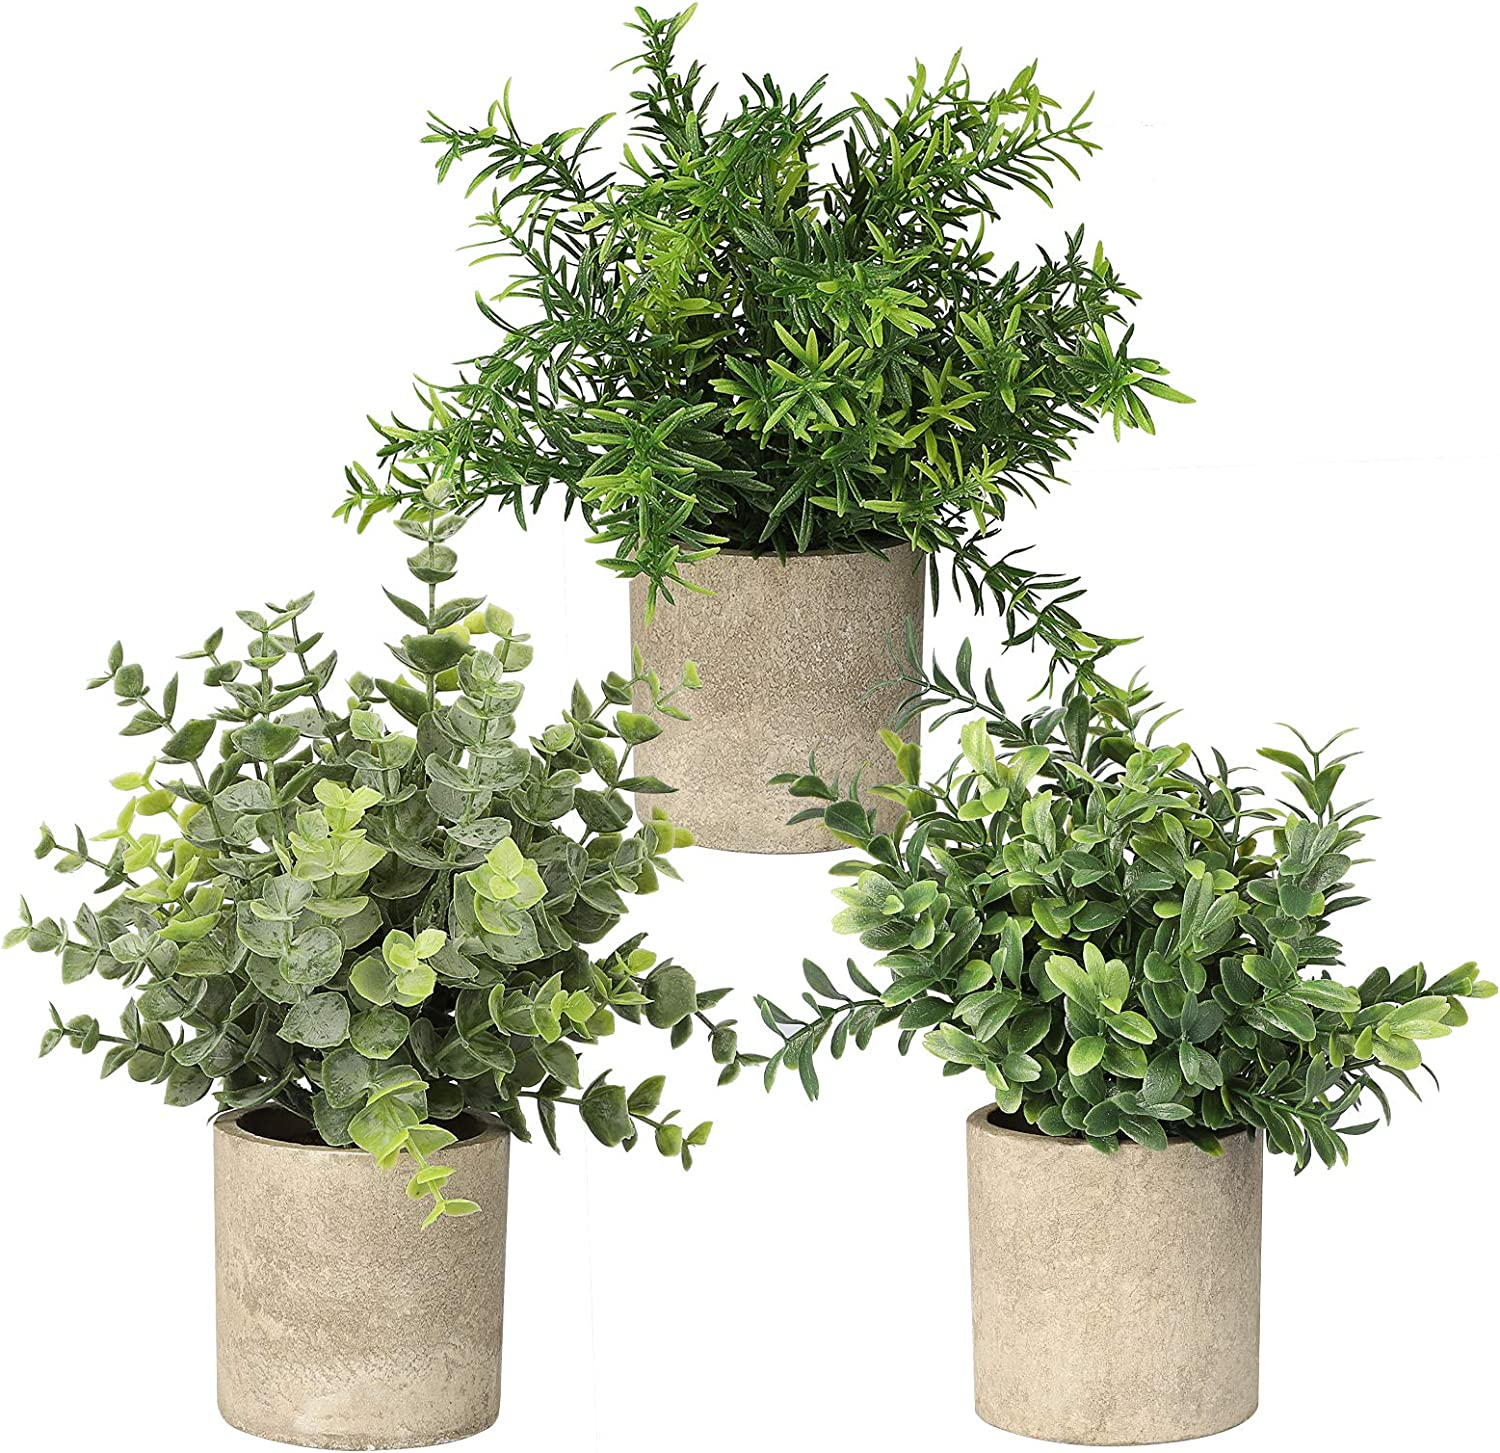 Amazon Com Sunjoyco 3 Pack Mini Potted Artificial Plants Faux Fake Greenery Eucalyptus Rosemary Plants For Home Office Table Desk Shower Kitchen Shelf Bedroom Bathroom Decoration Indoor Outdoor Decor Home Kitchen